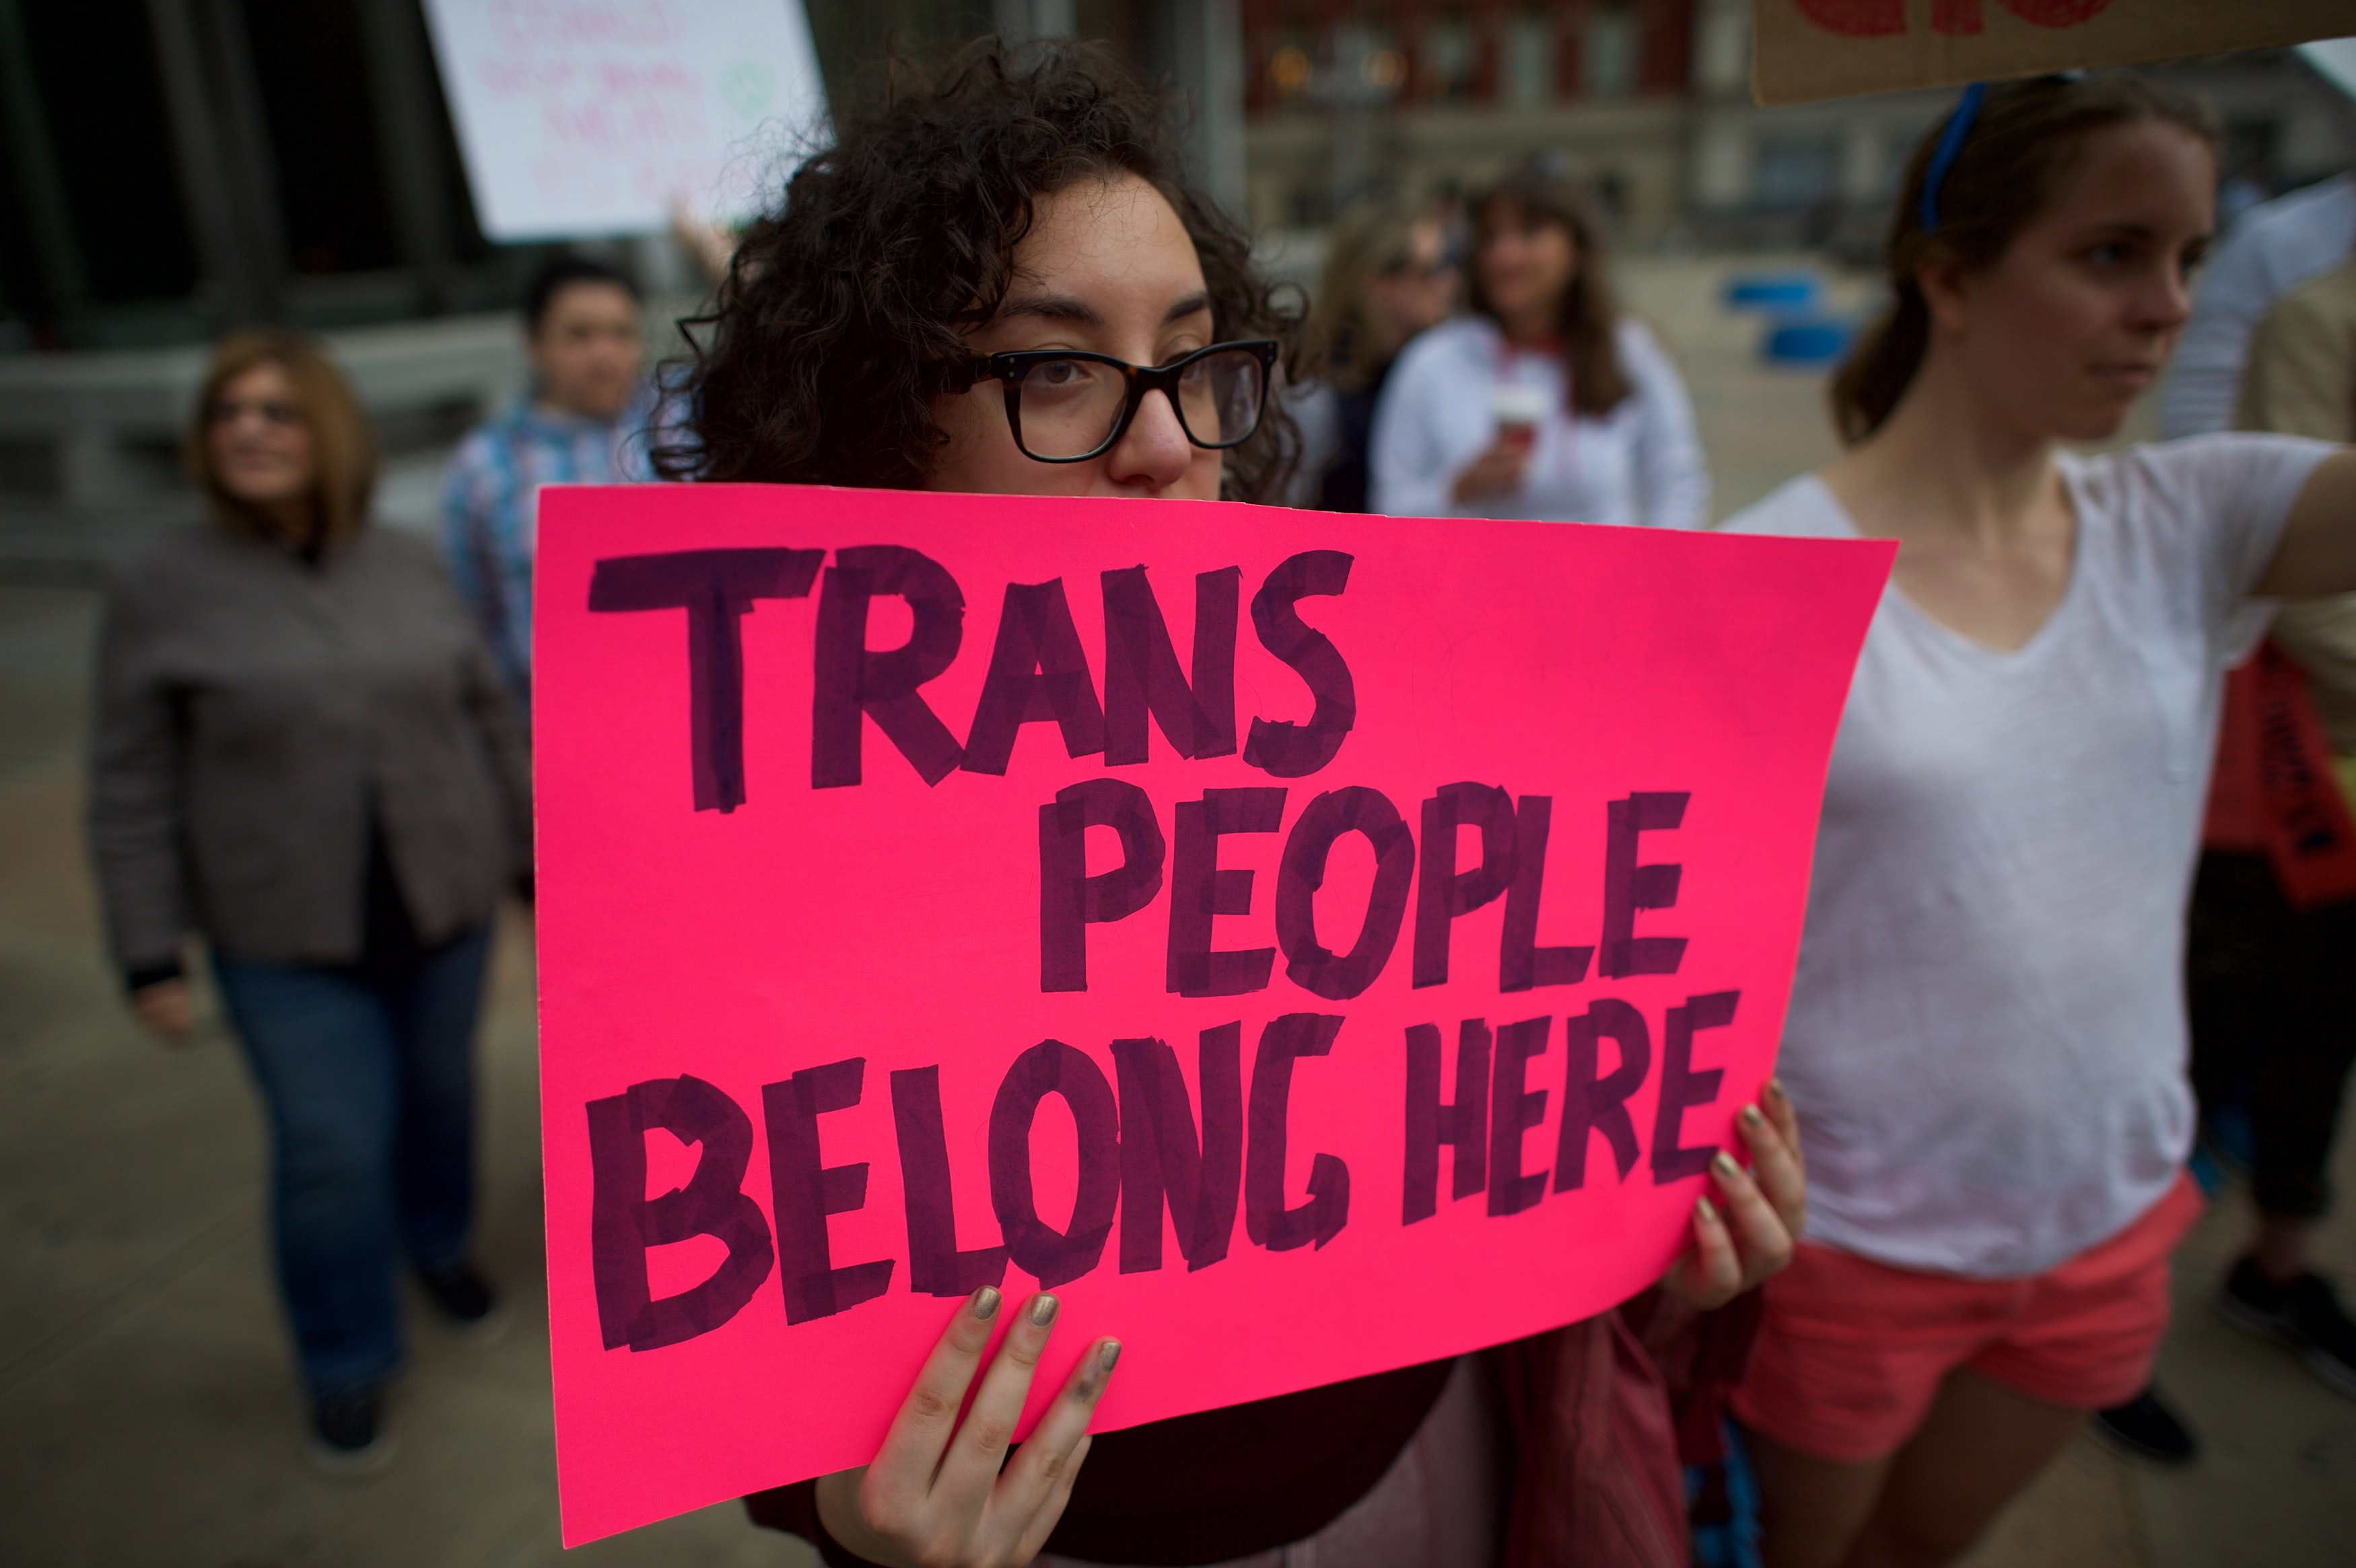 Student sues school district claiming pro-trans policy constitutes sexual harassment